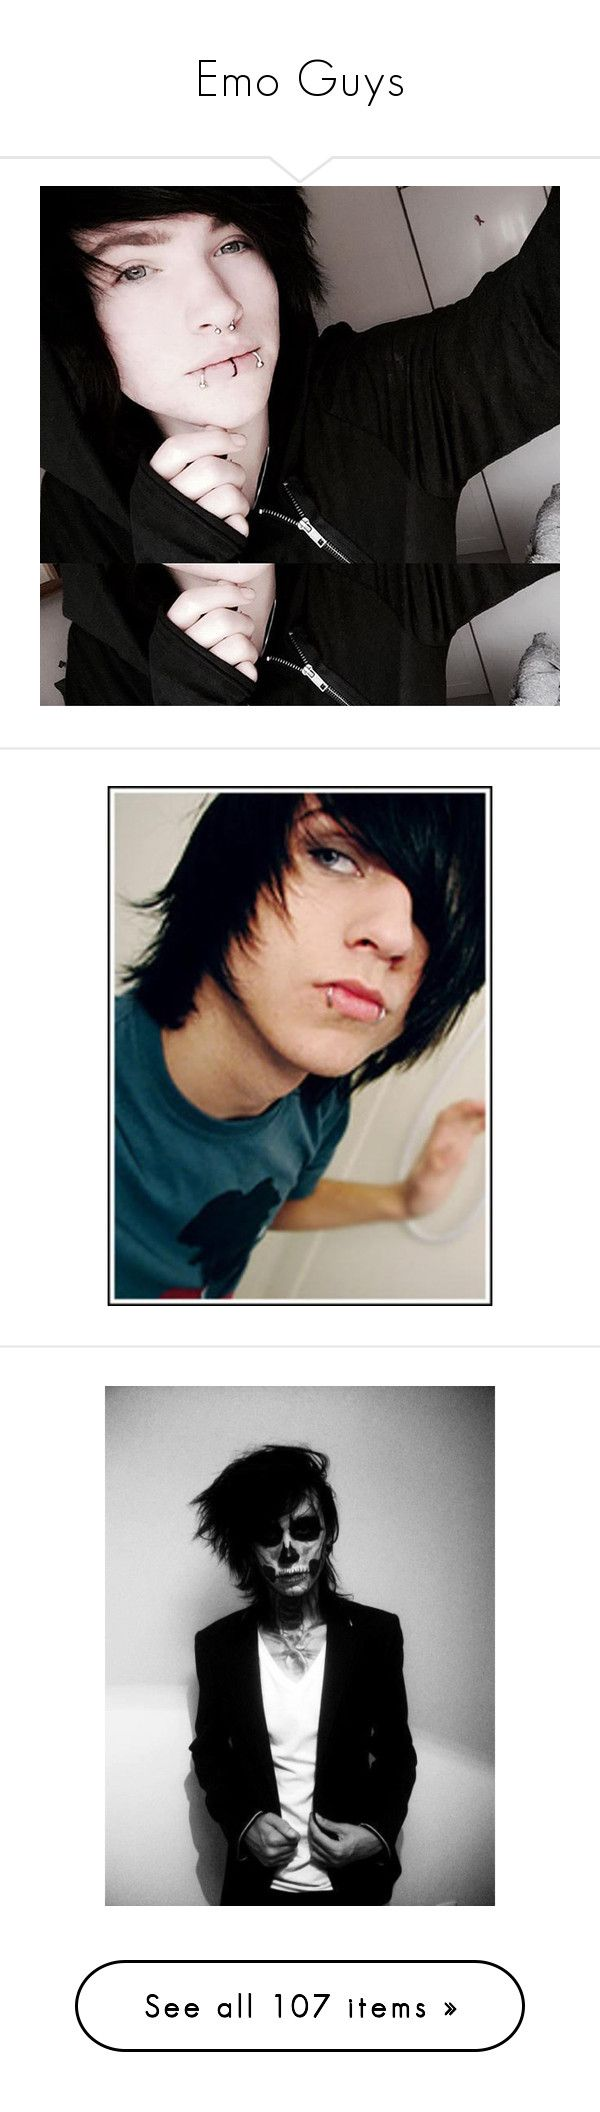 best emo images on pinterest cute emo boys emo boys and emo guys